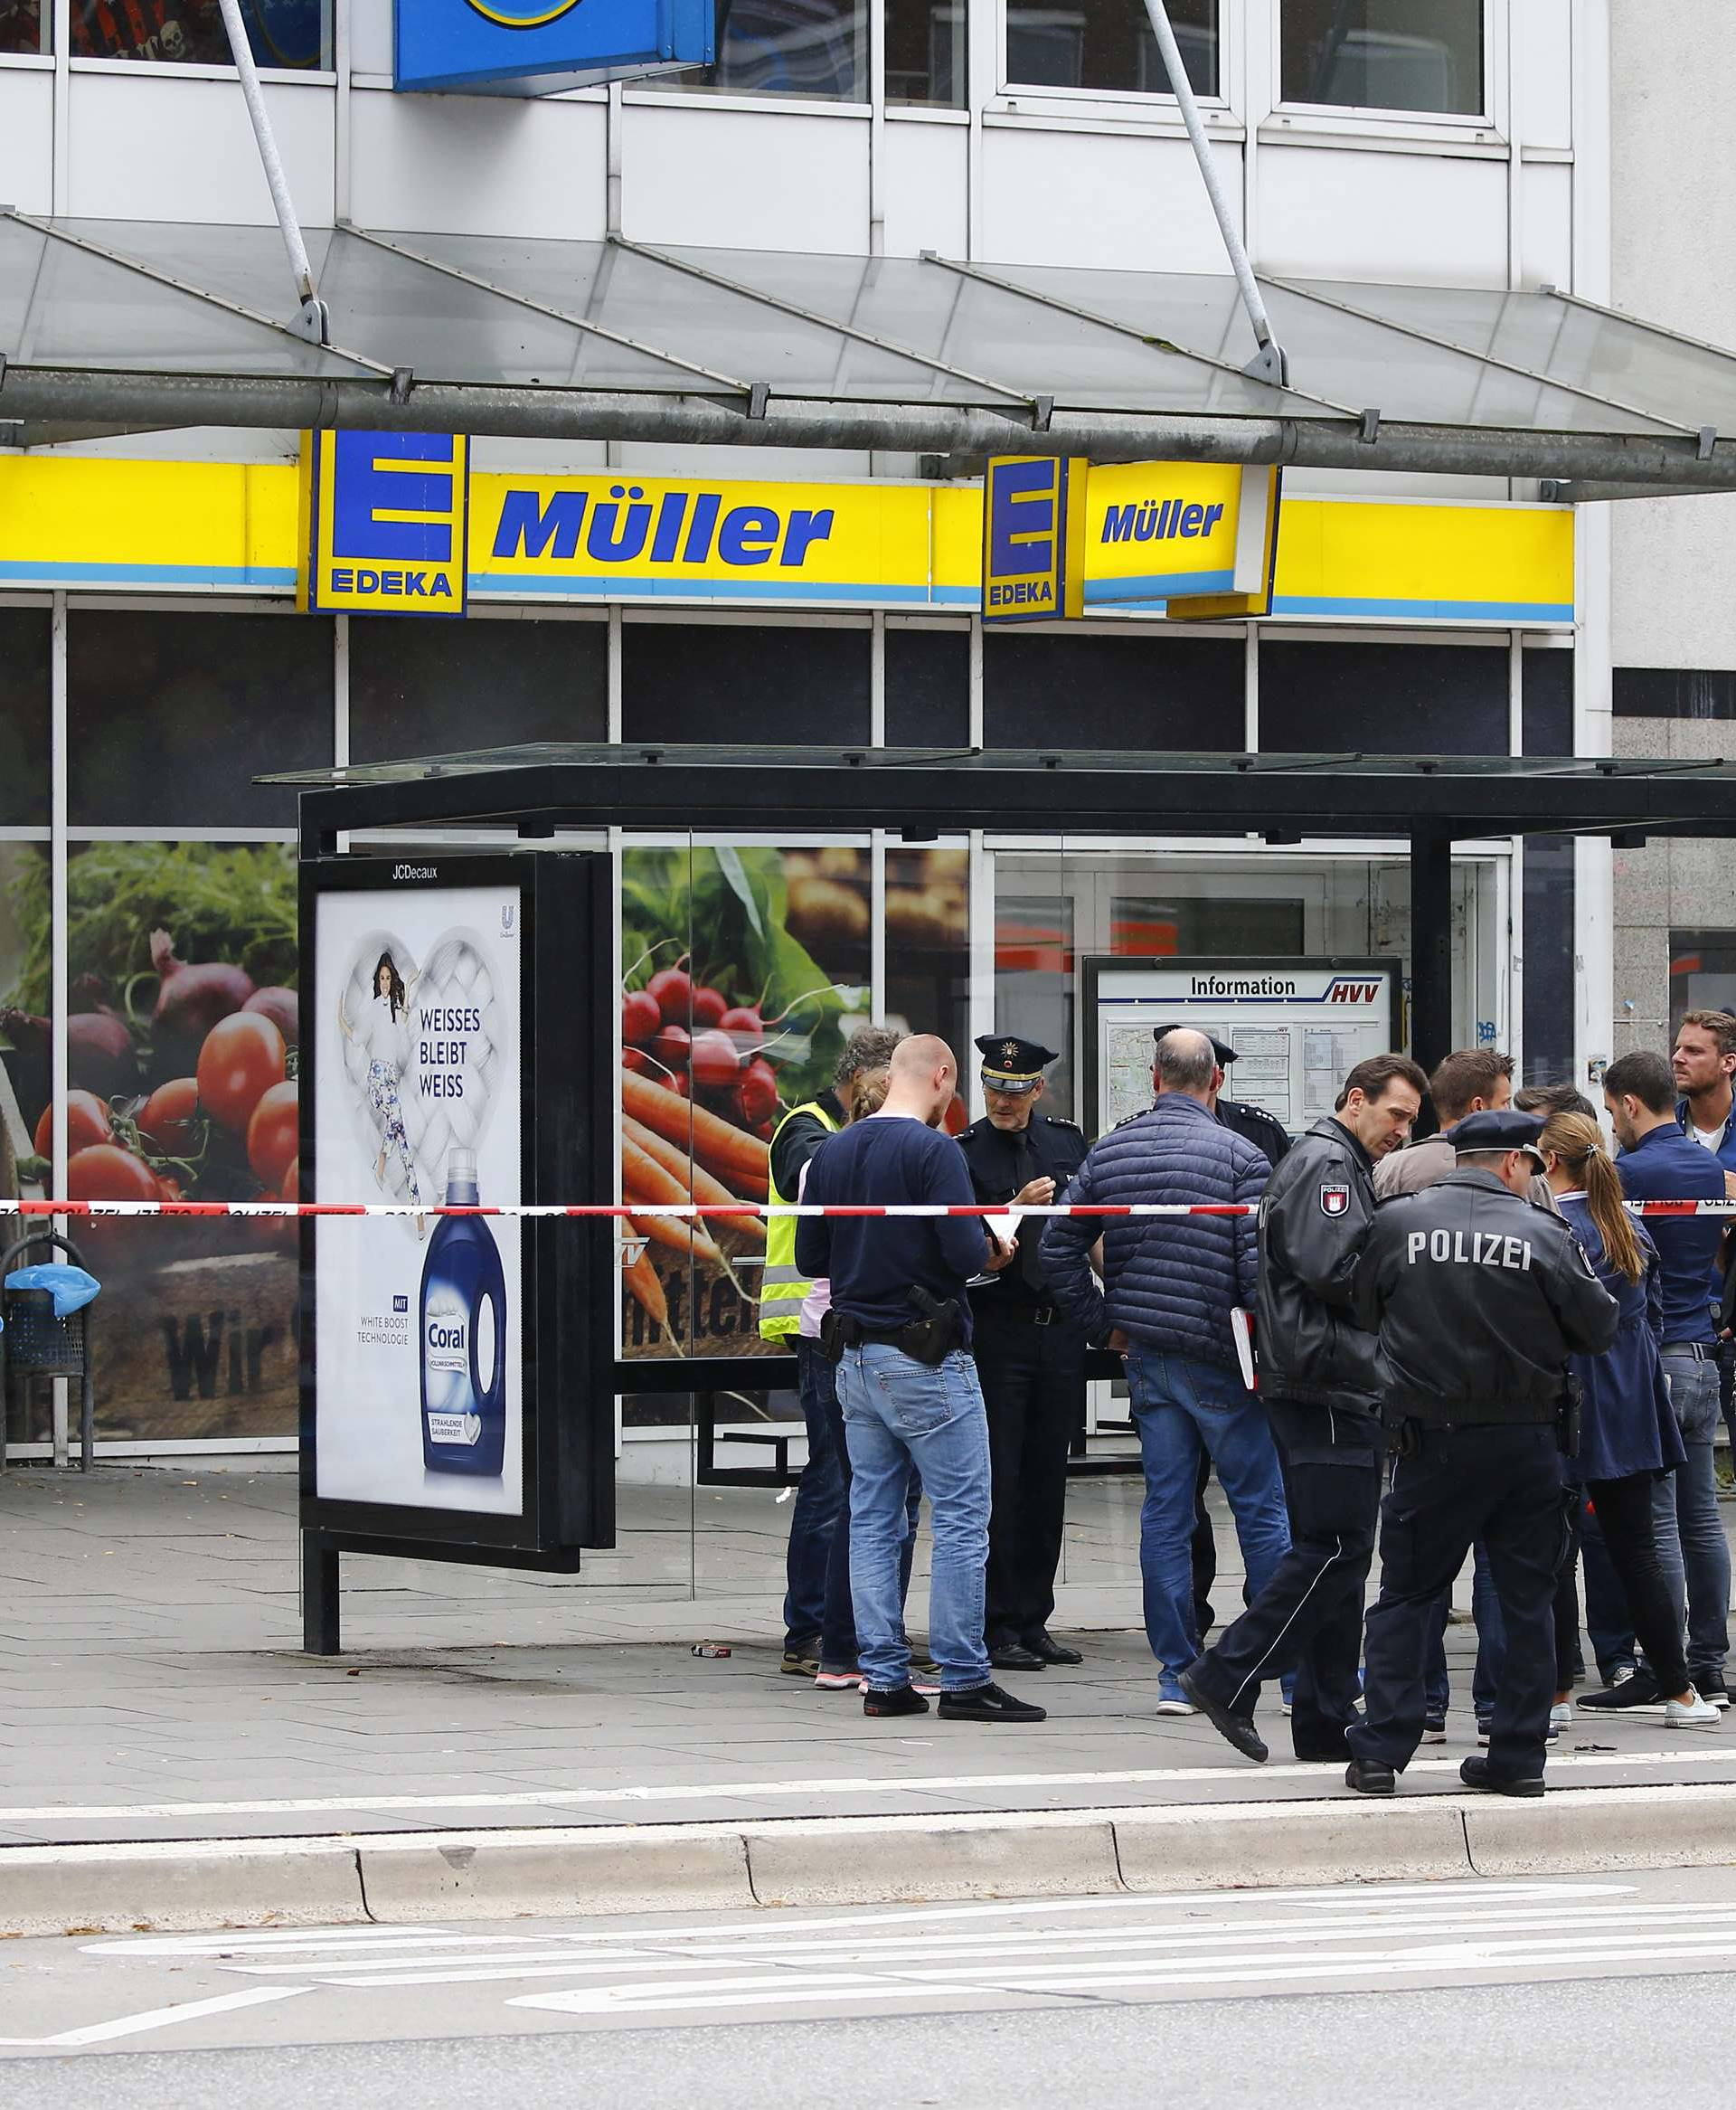 Security forces are seen after a knife attack in a supermarket in Hamburg